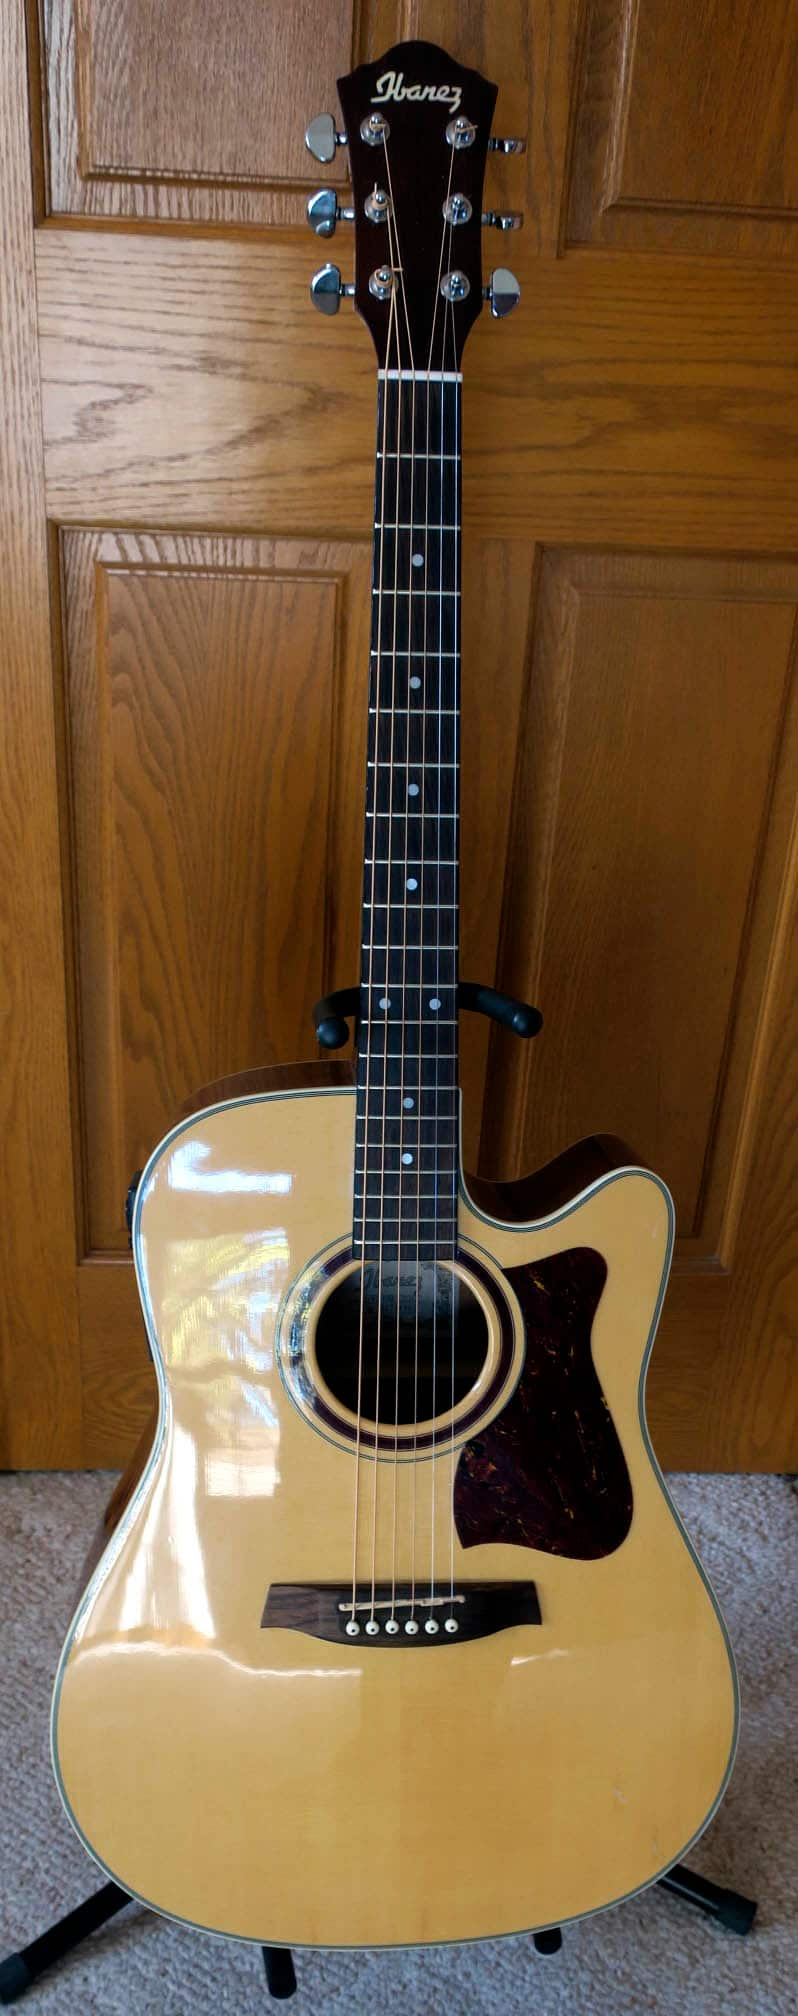 ibanez vs 100 cent acoustic electric guitar with a solid reverb. Black Bedroom Furniture Sets. Home Design Ideas